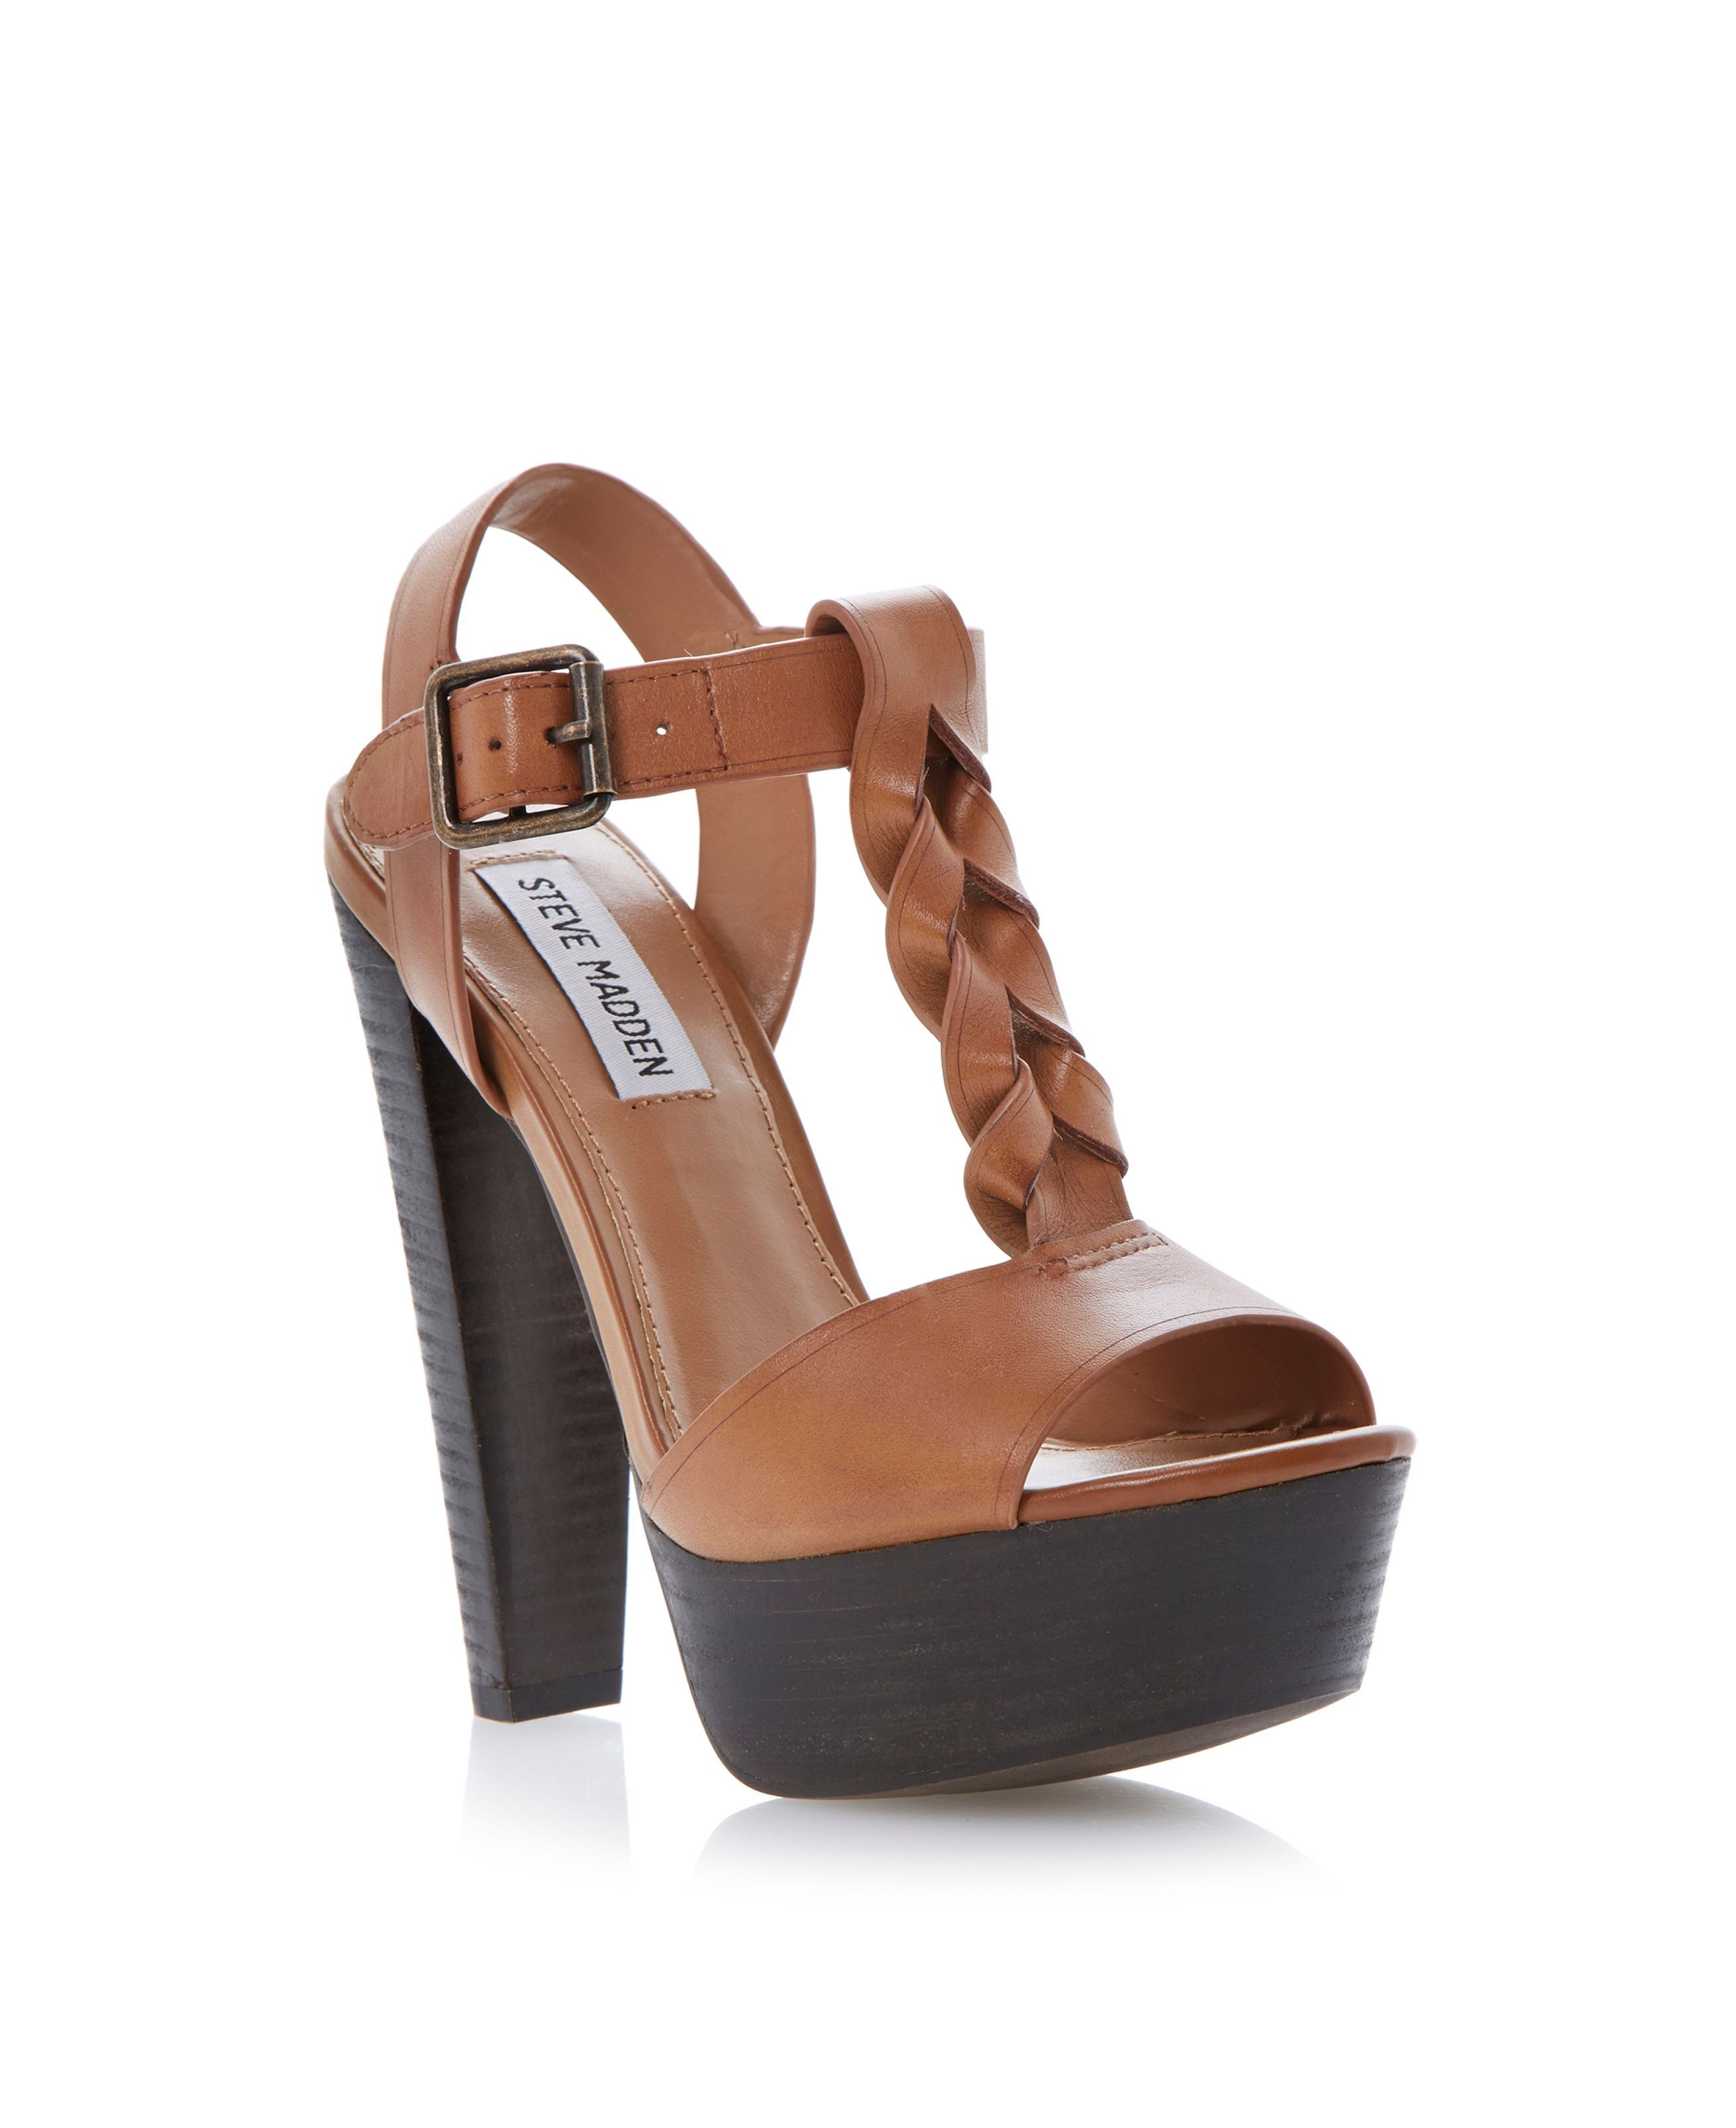 steve-madden-brown-daylee-block-heel-sandals-sandal-